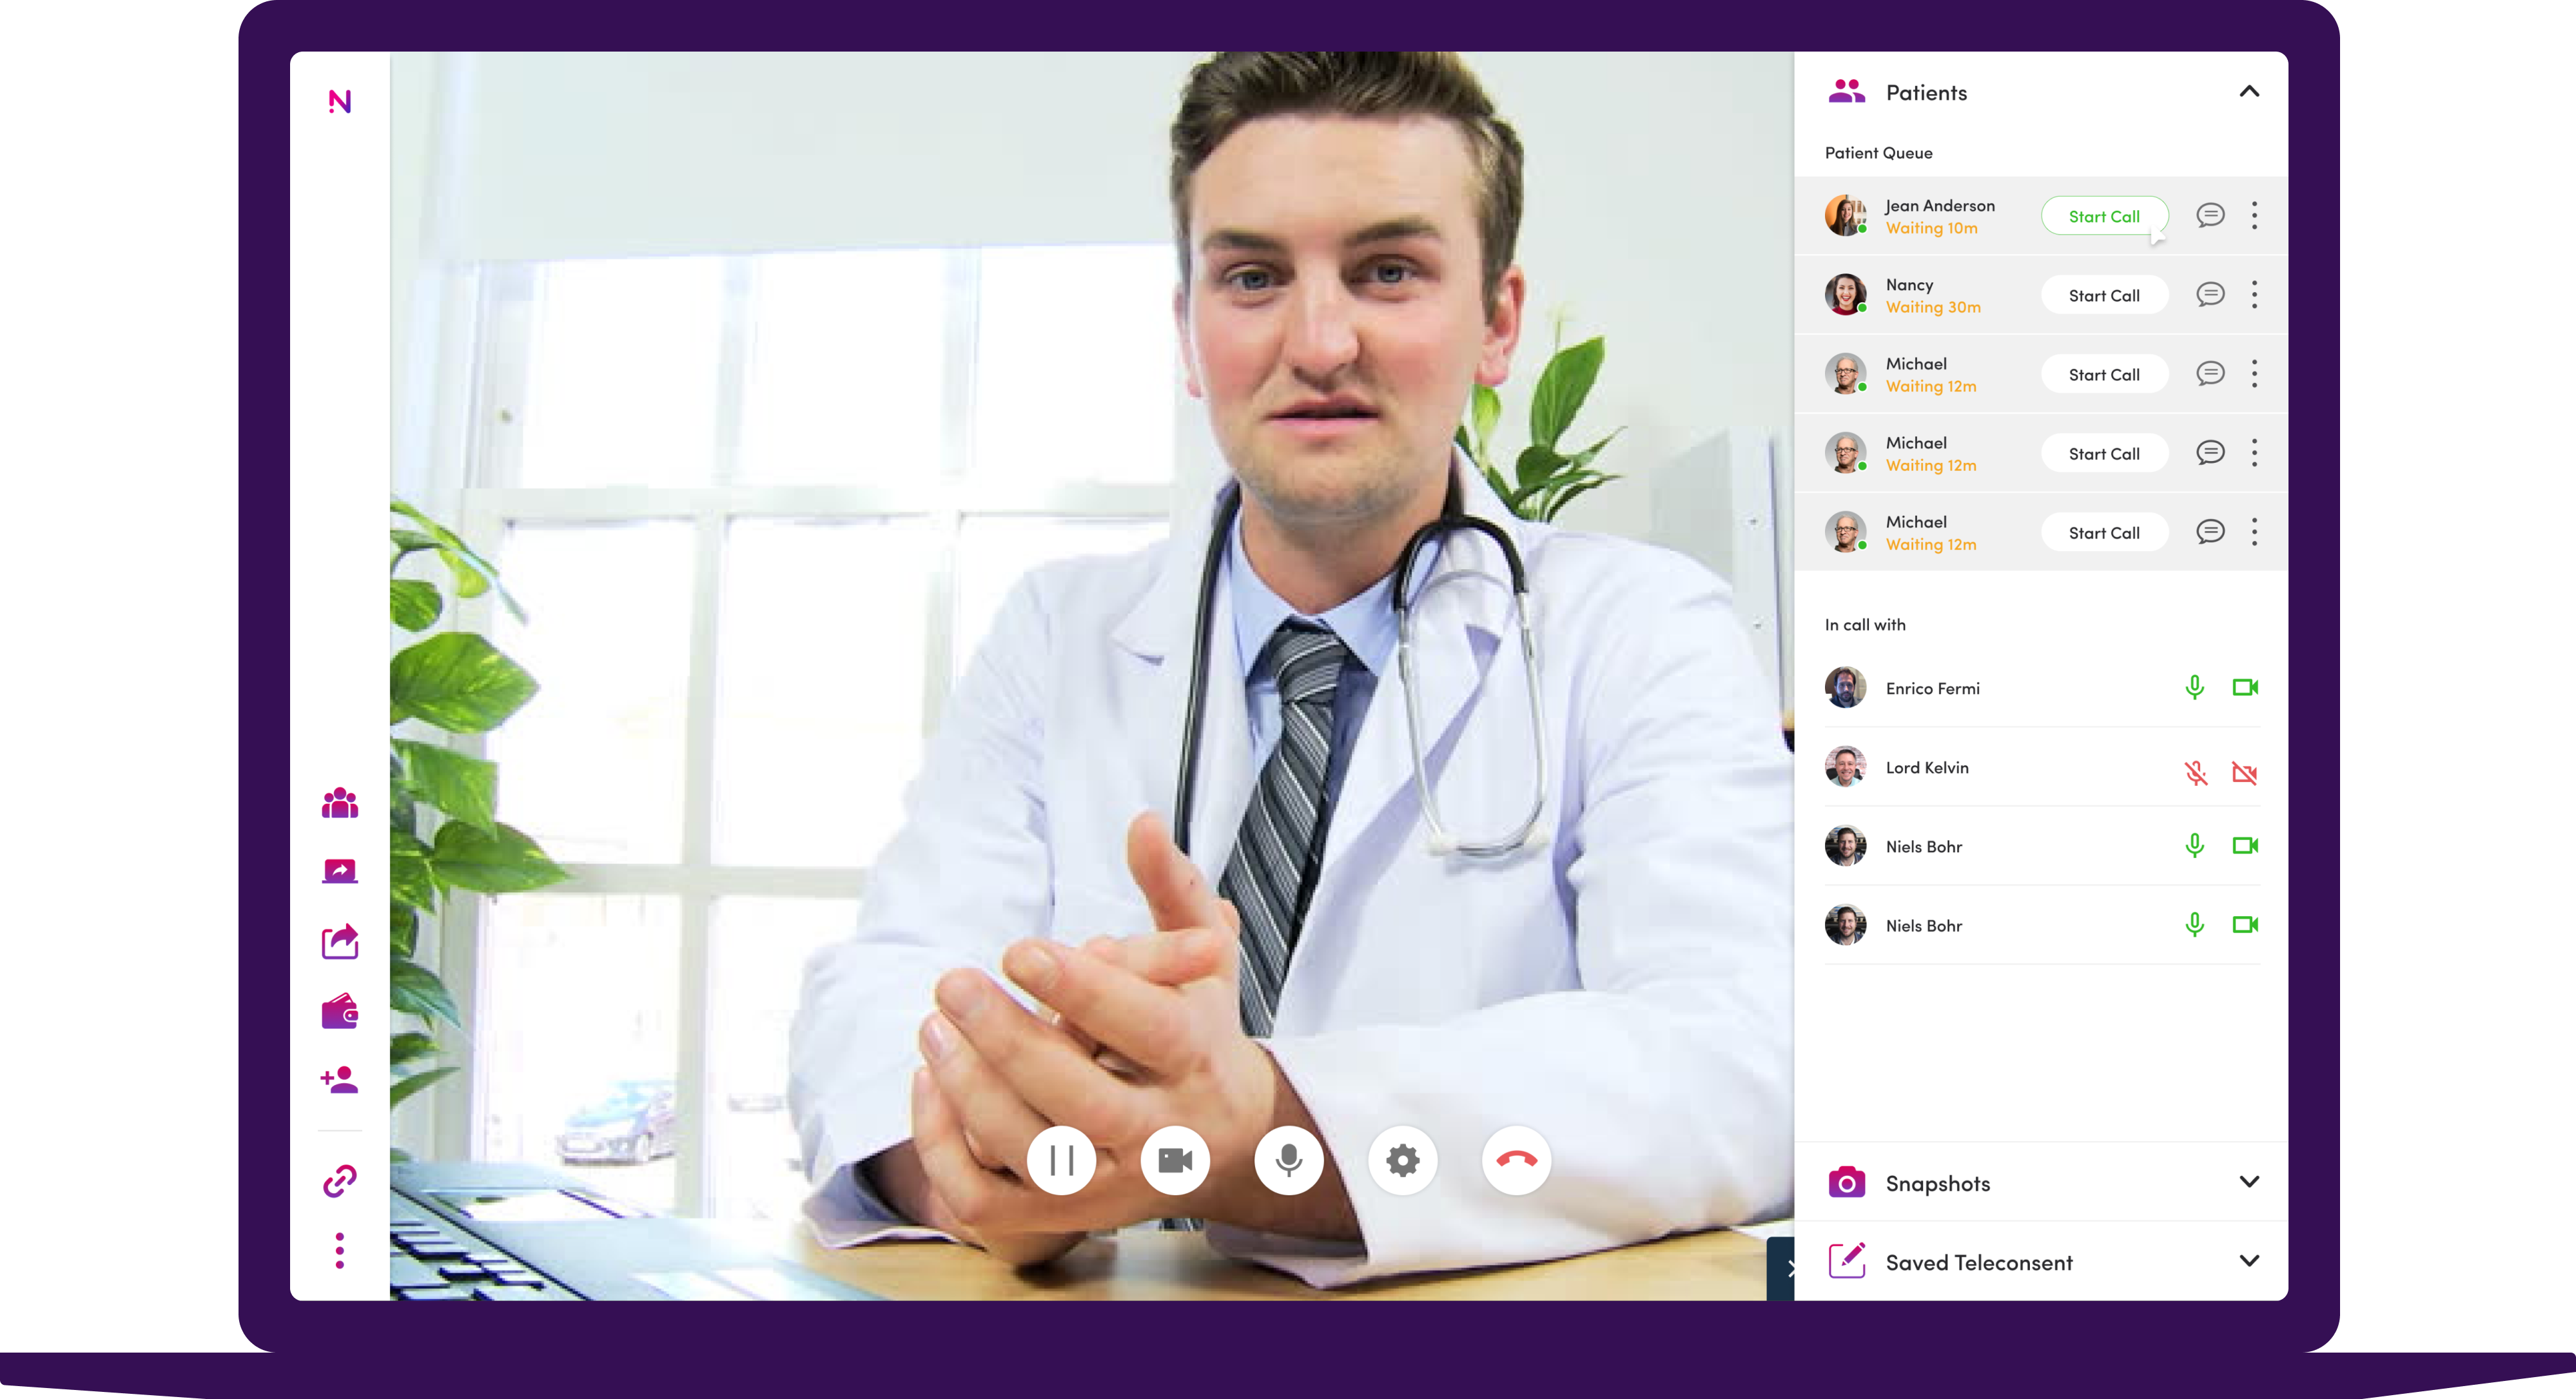 Patient queue user interface with a male doctor's video stream on a laptop